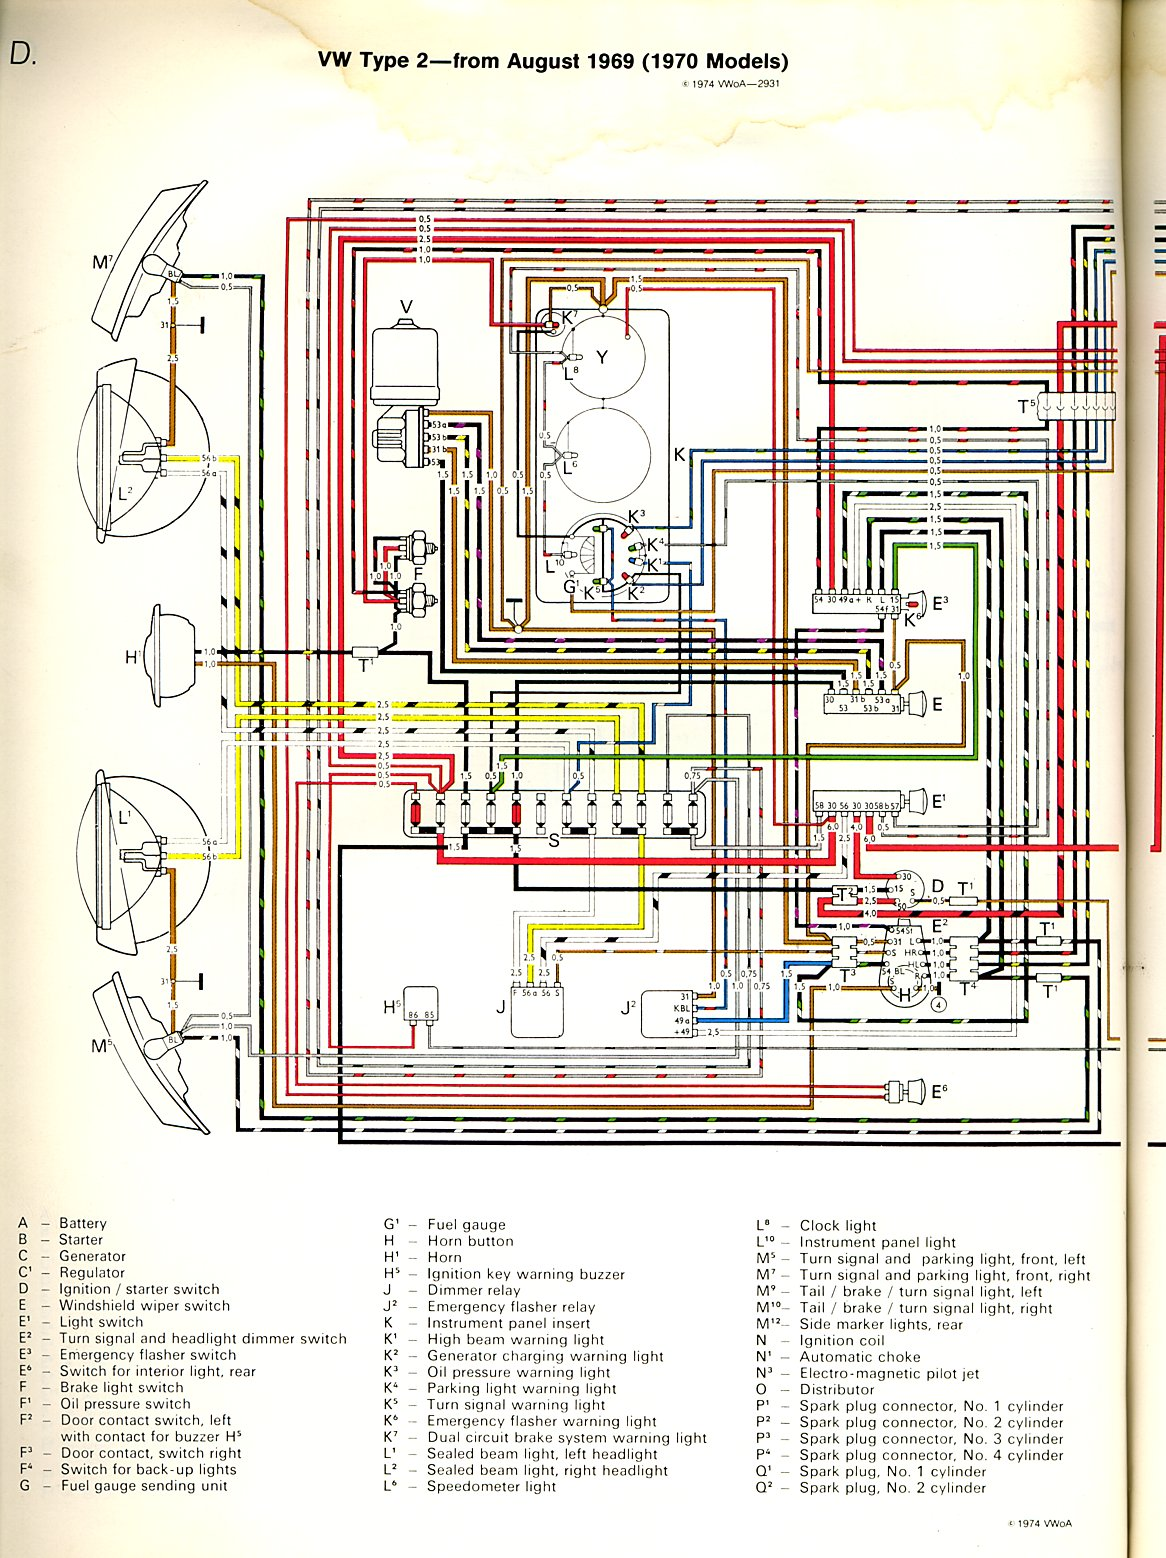 Type 2 Wiring Diagrams Mercedes Ignition Switch Diagram Free Download Image